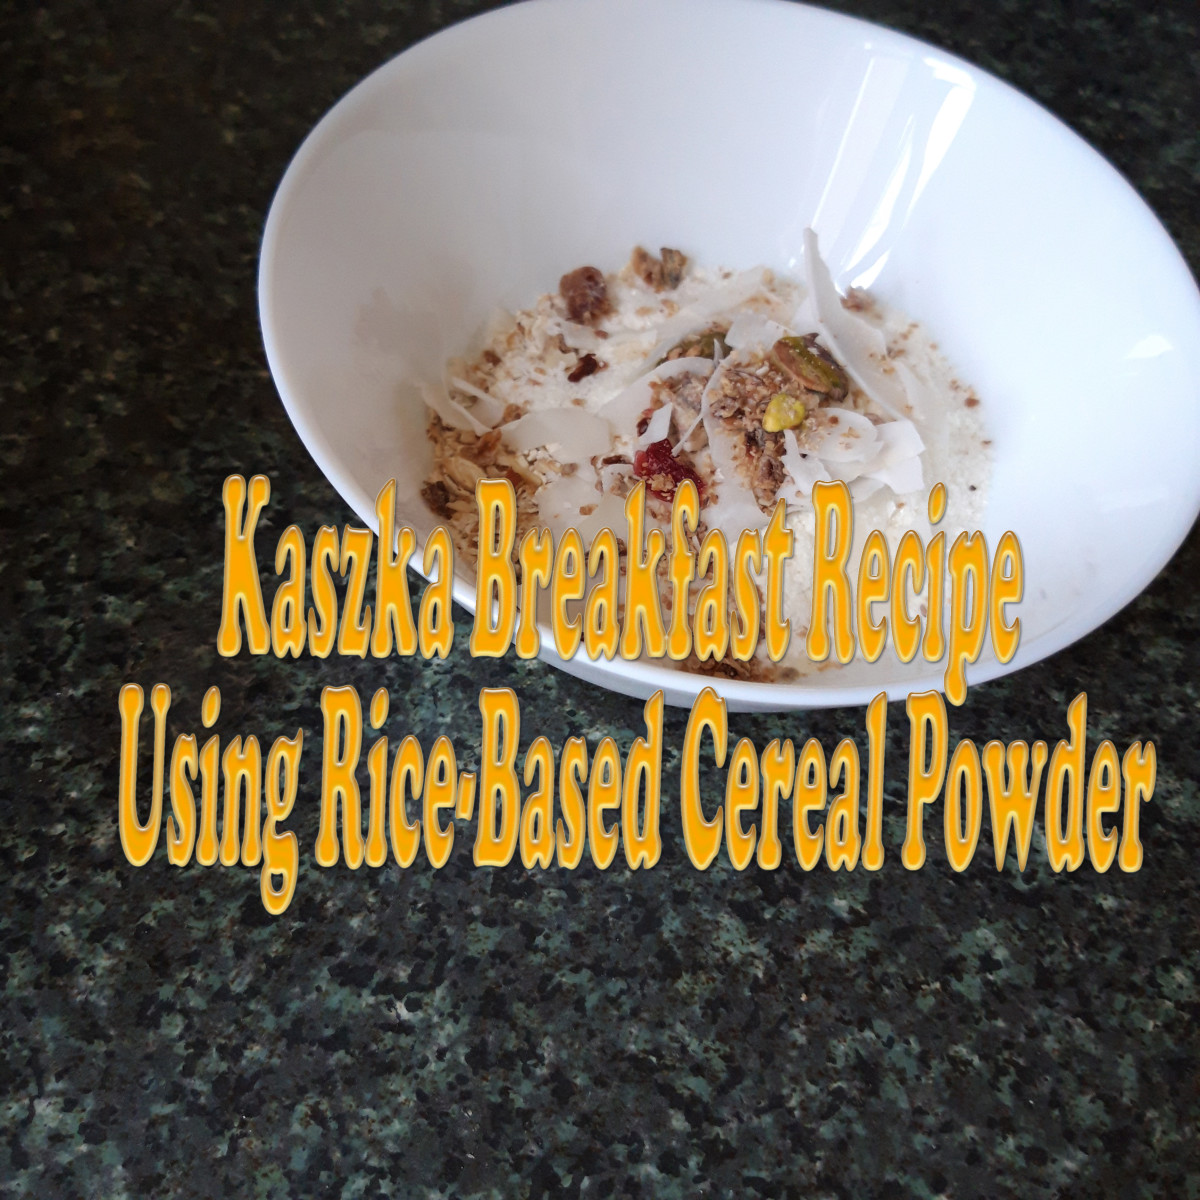 This delicious and satisfying breakfast was the result of experimentation